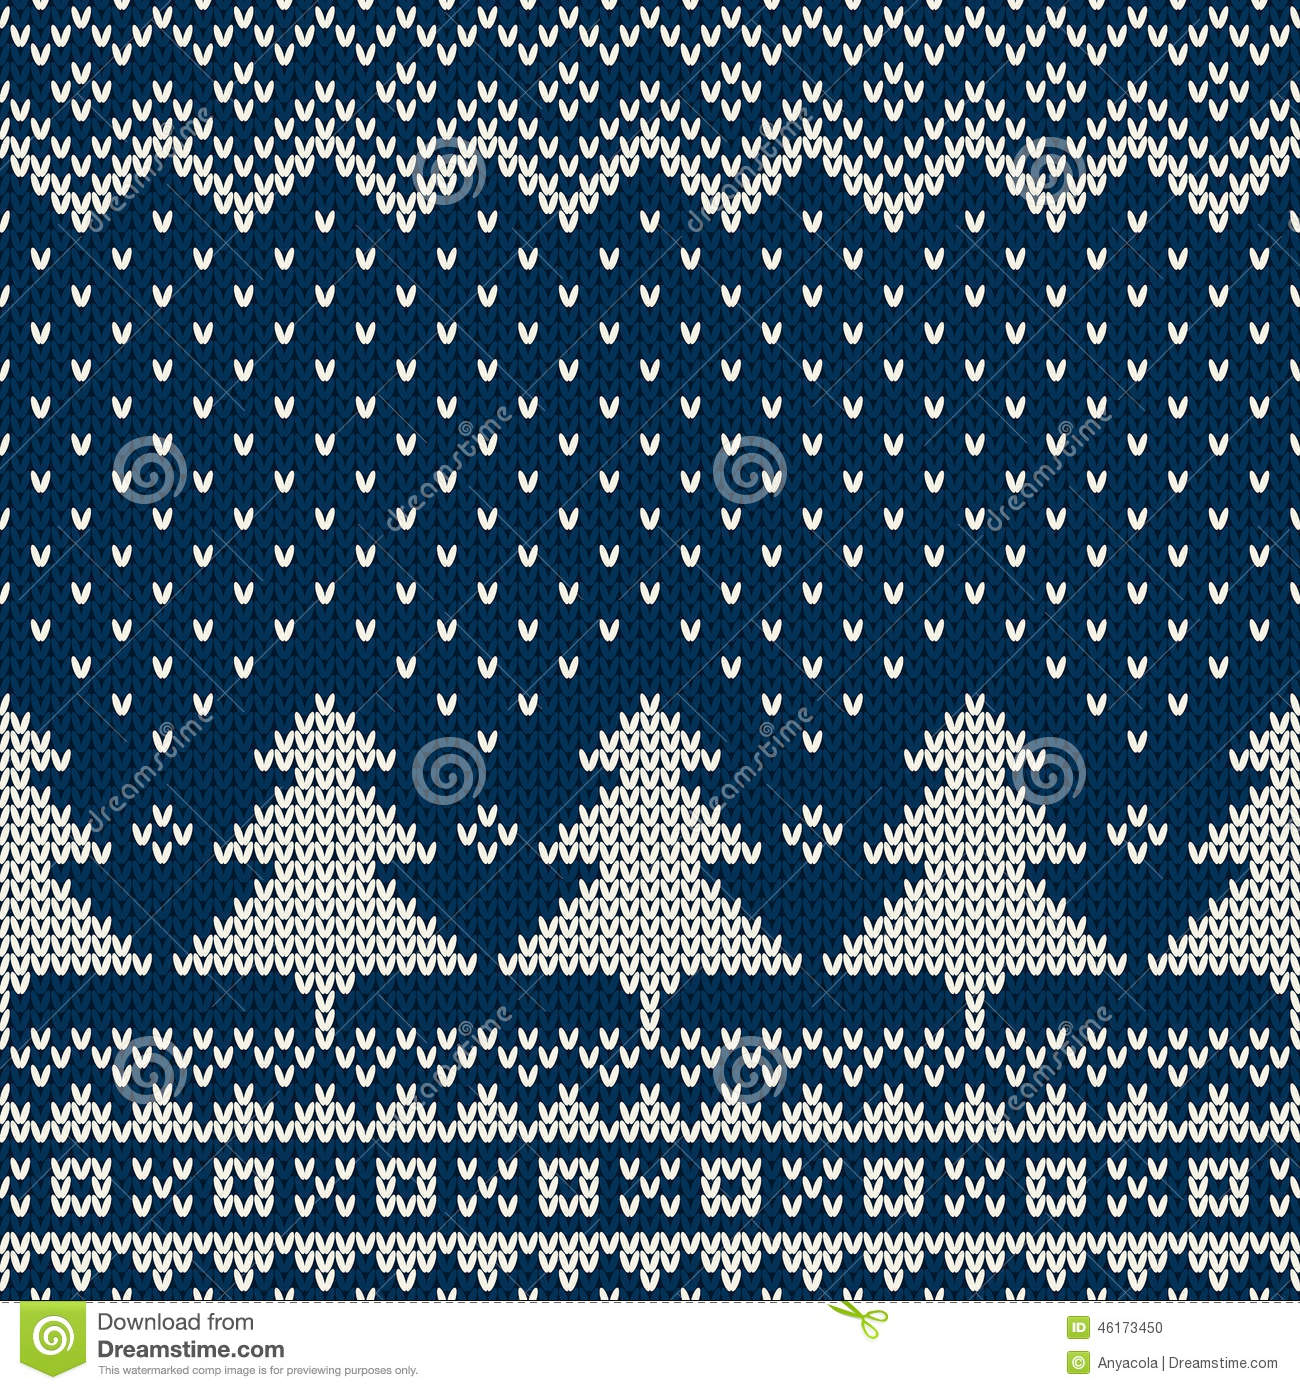 Knitting Patterns For Winter : Winter Holiday Seamless Knitting Pattern With A Christmas ...